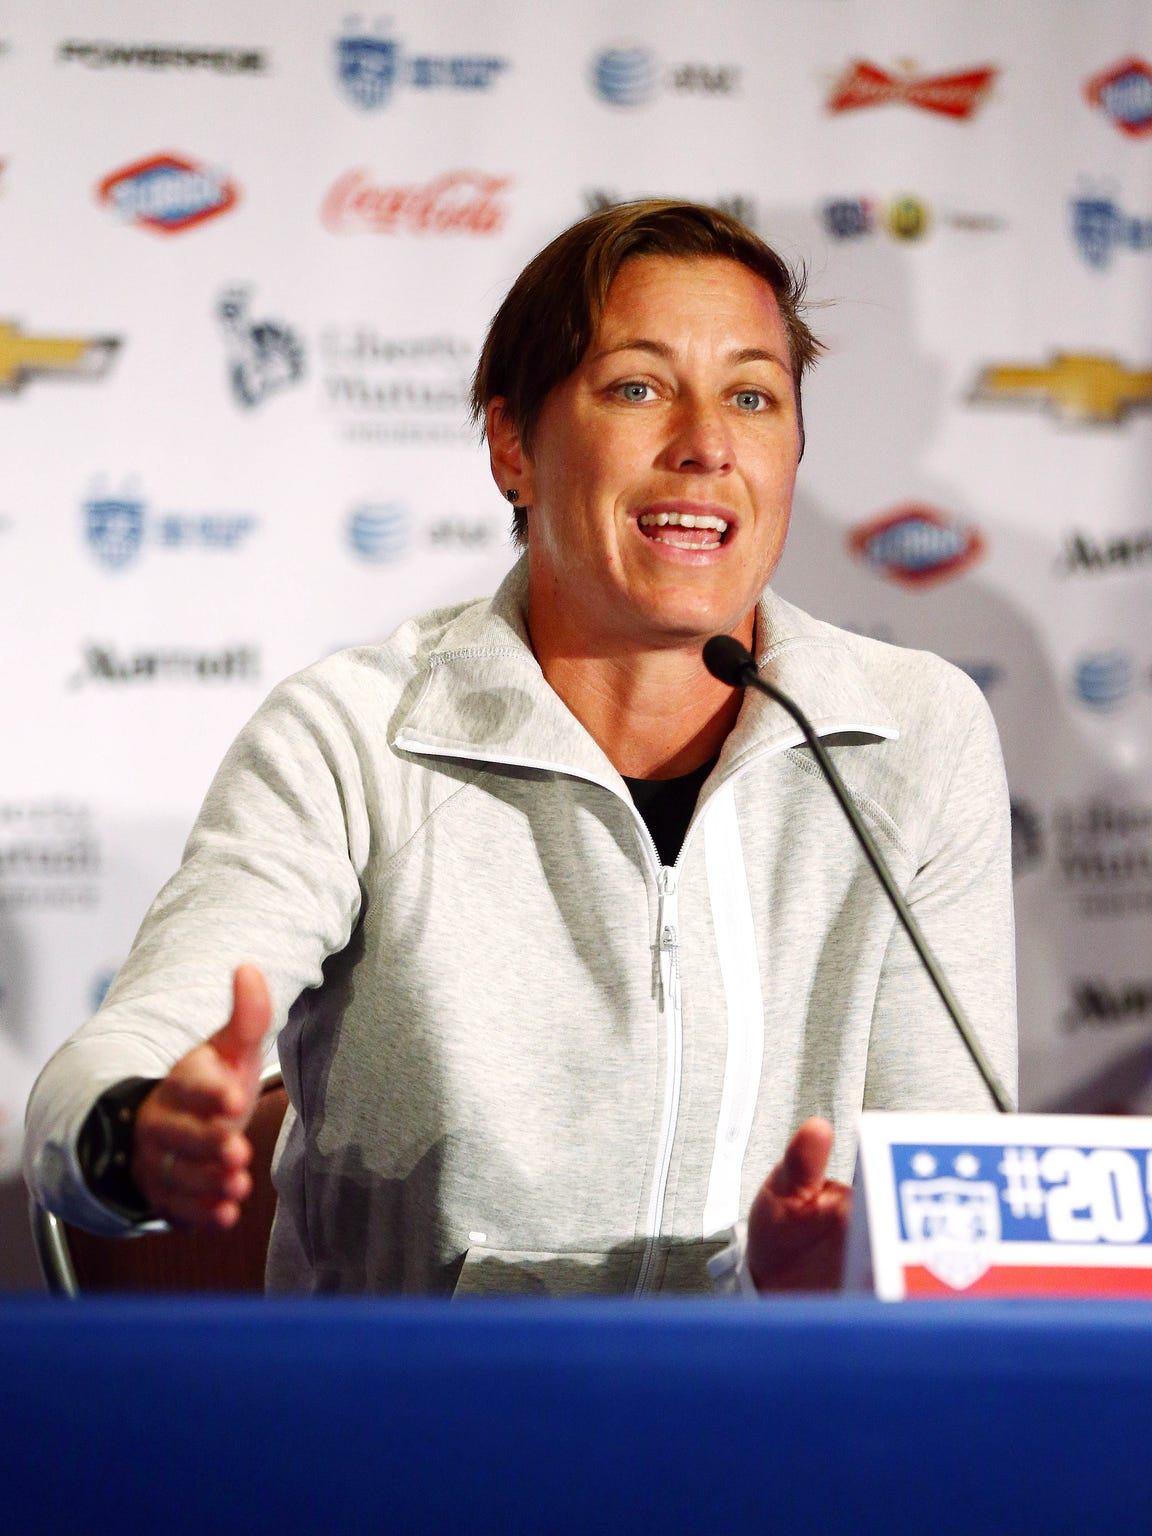 Abby Wambach addresses the media at the USA women's national soccer team media day May 27 in New York City.